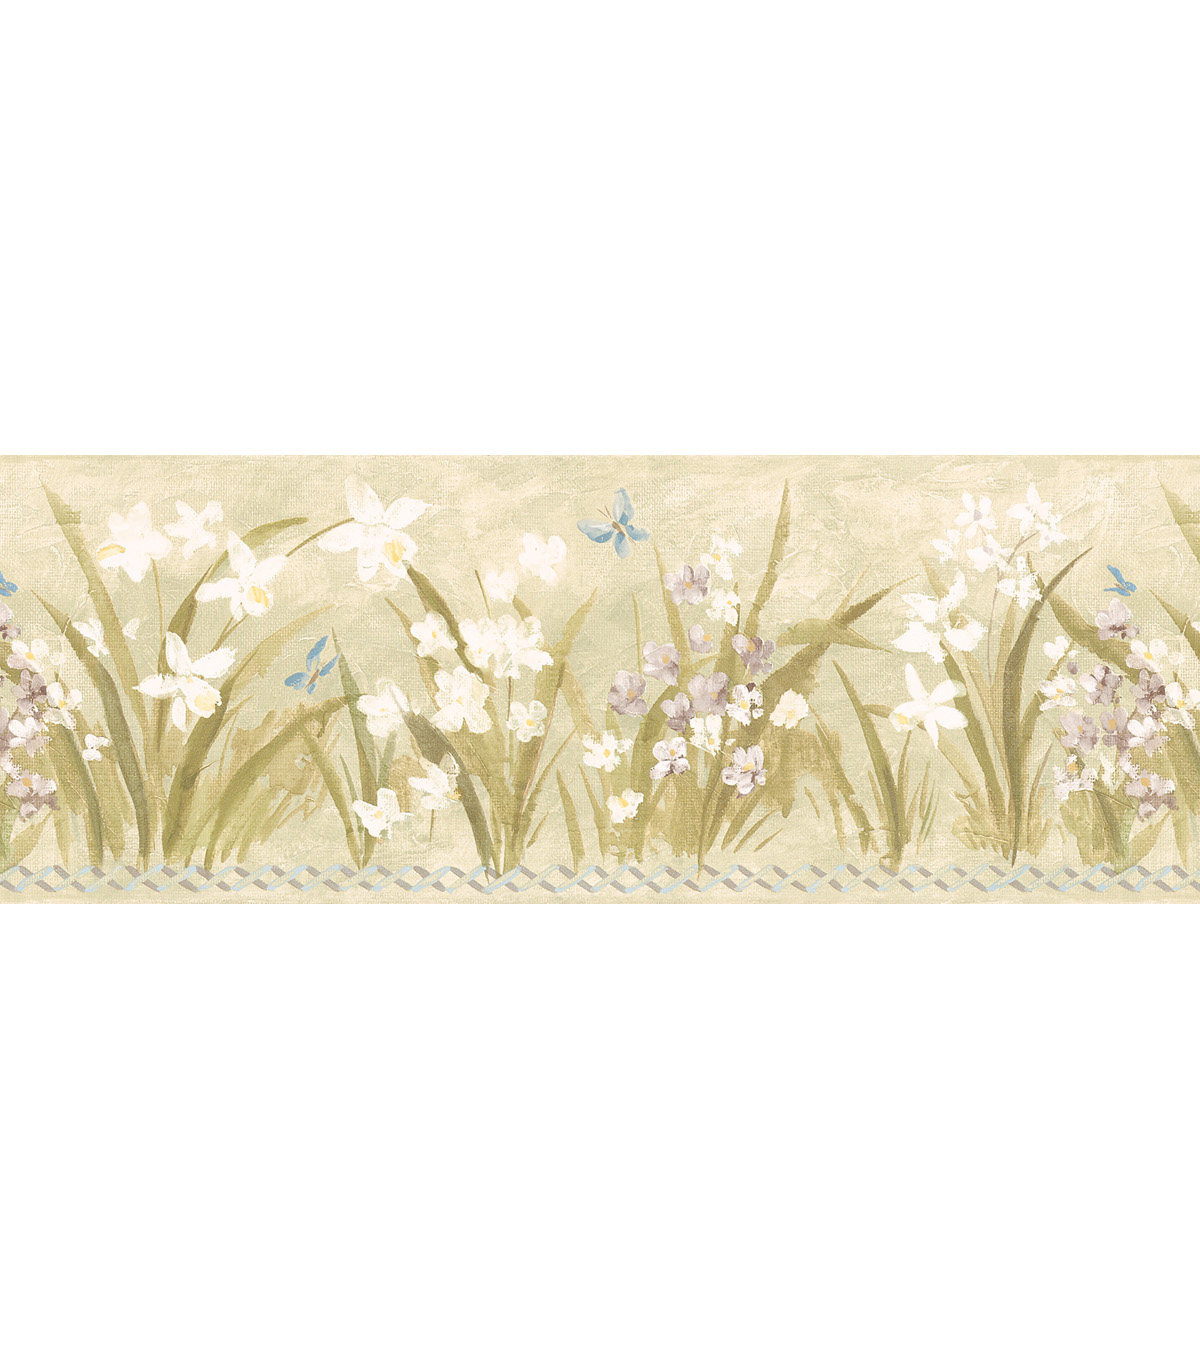 High Grass Floral Motif Wallpaper Border, Green Sample